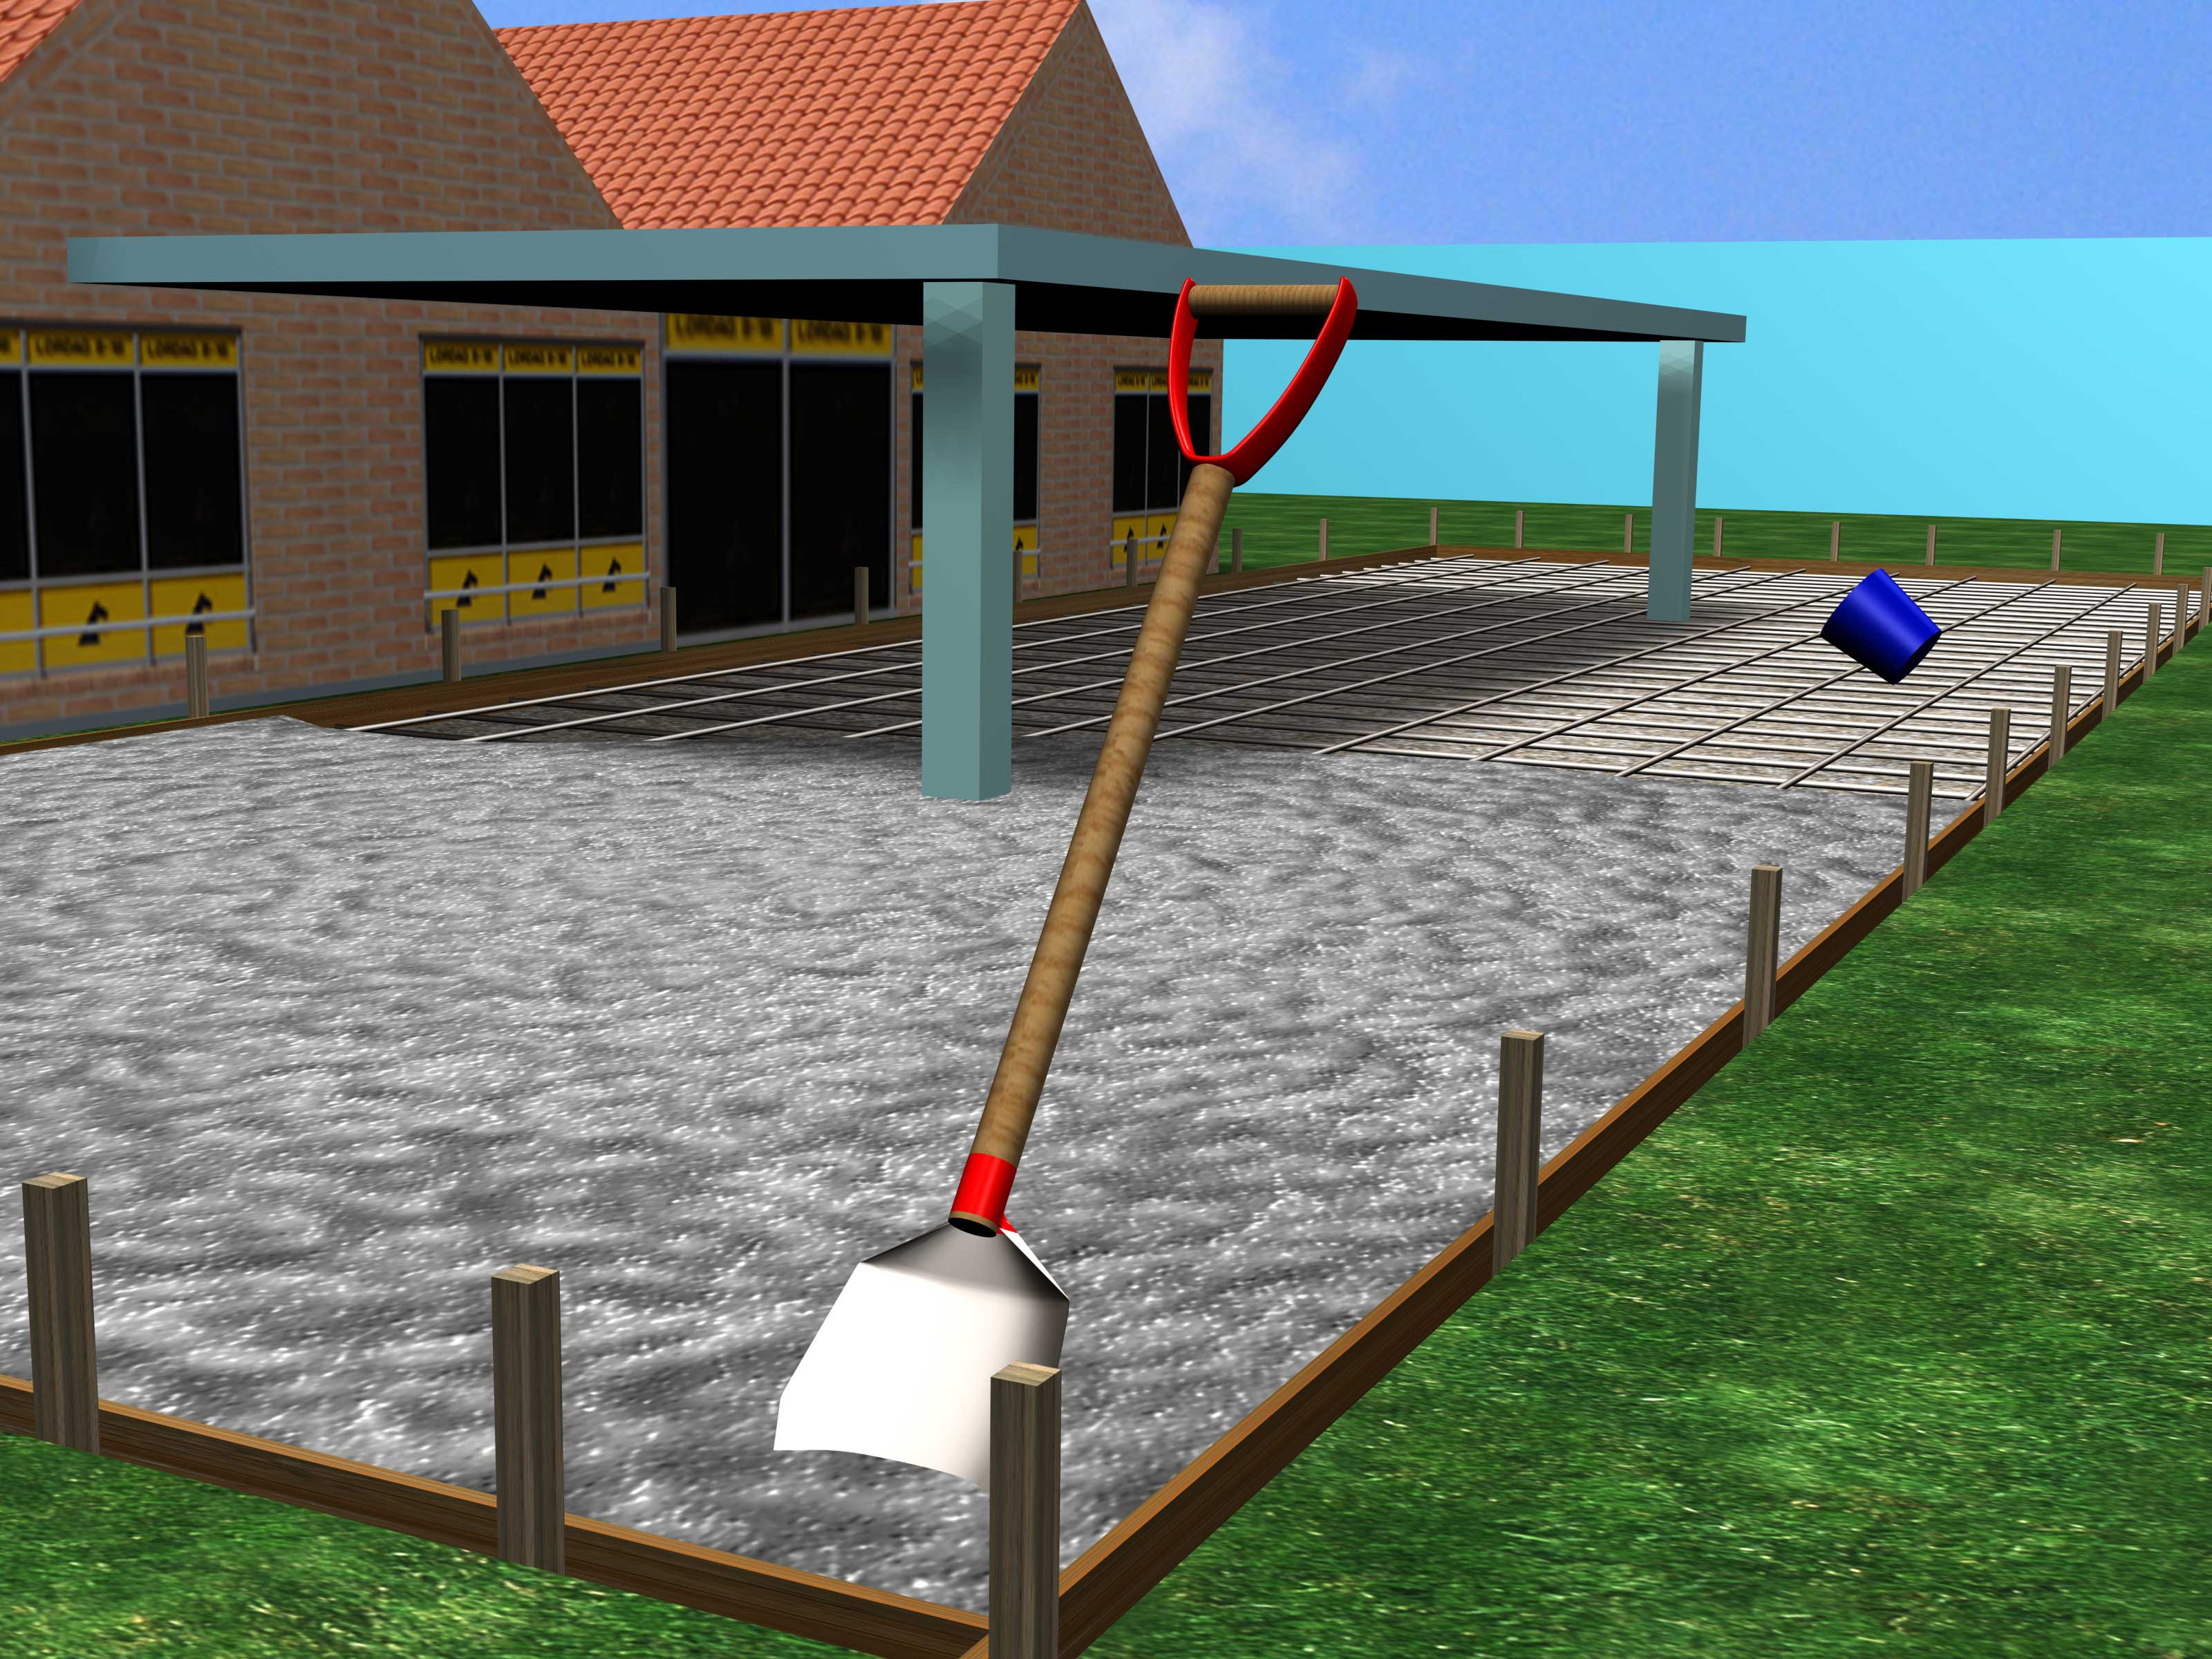 How to Pour a Concrete Patio (with Pictures) - wikiHow